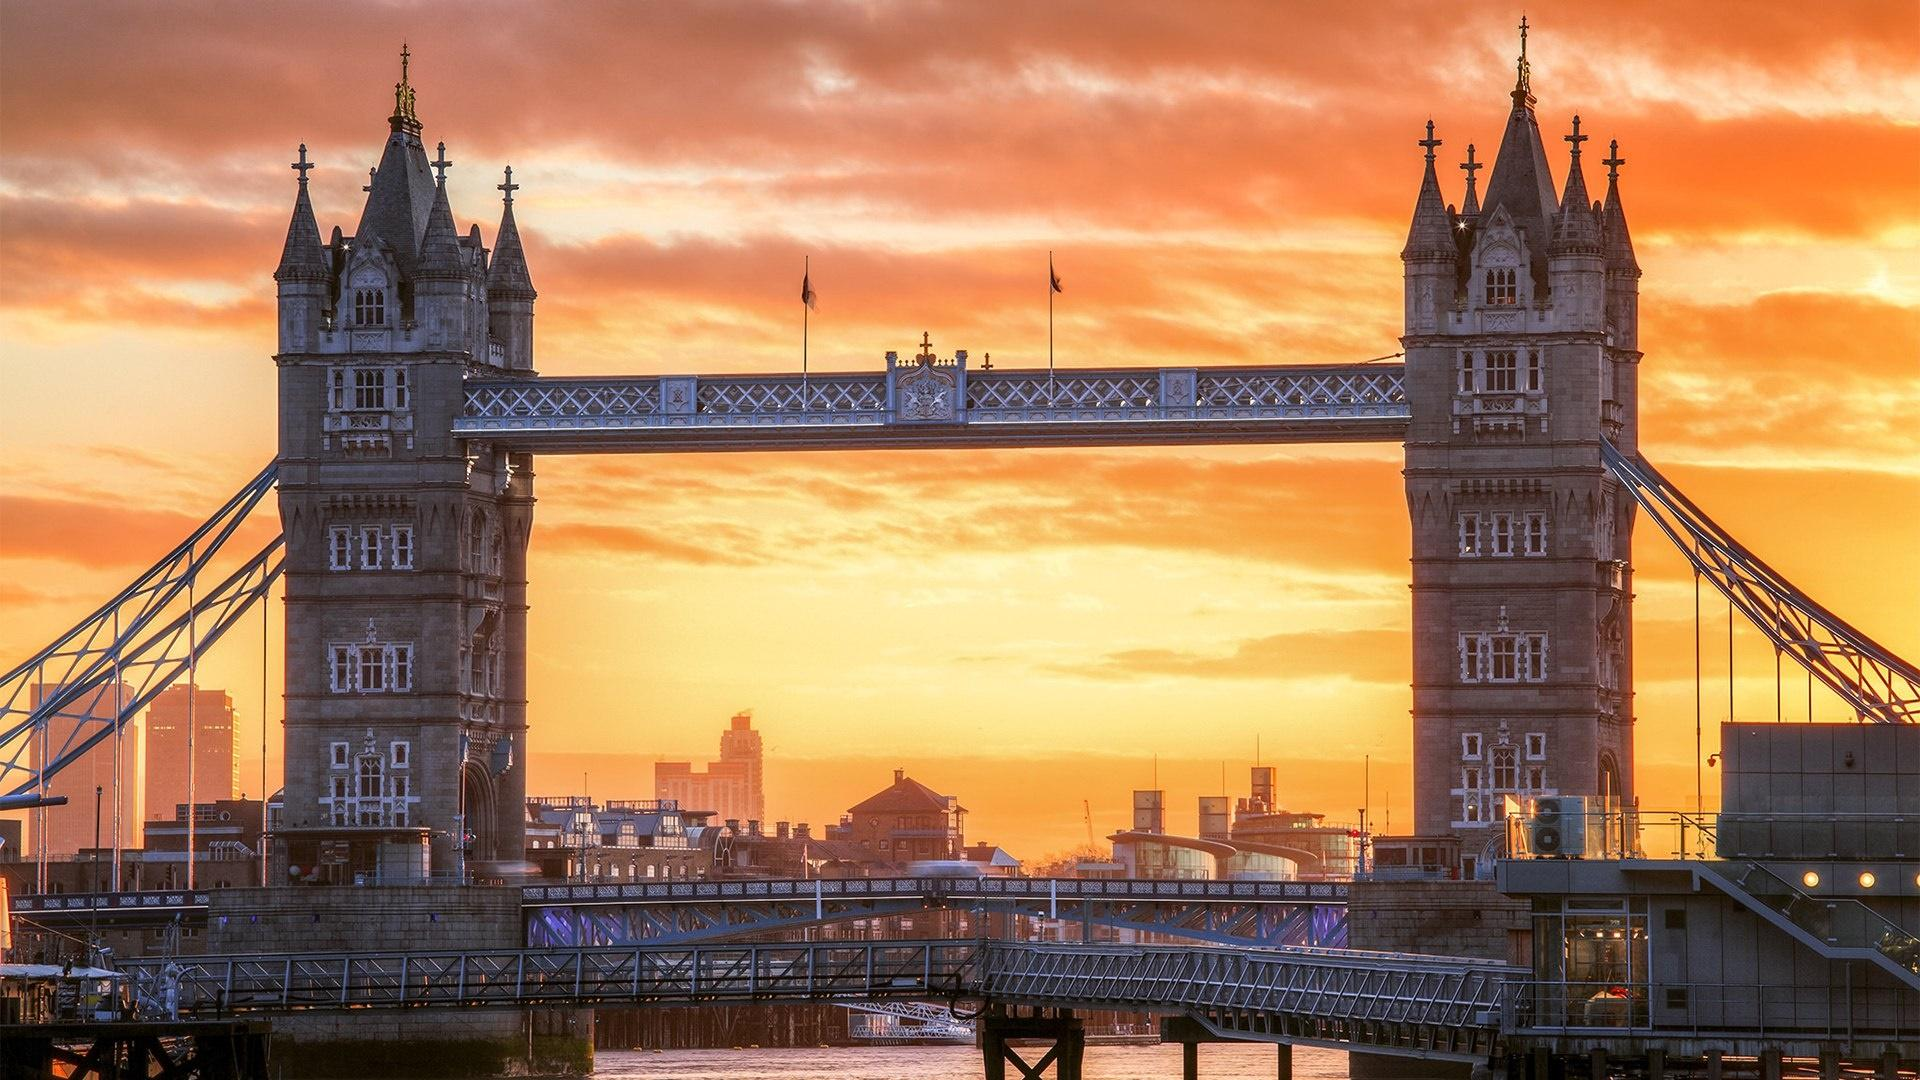 Tower Bridge At Dawn HD Wallpaper | Wallpaper Studio 10 | Tens of ...